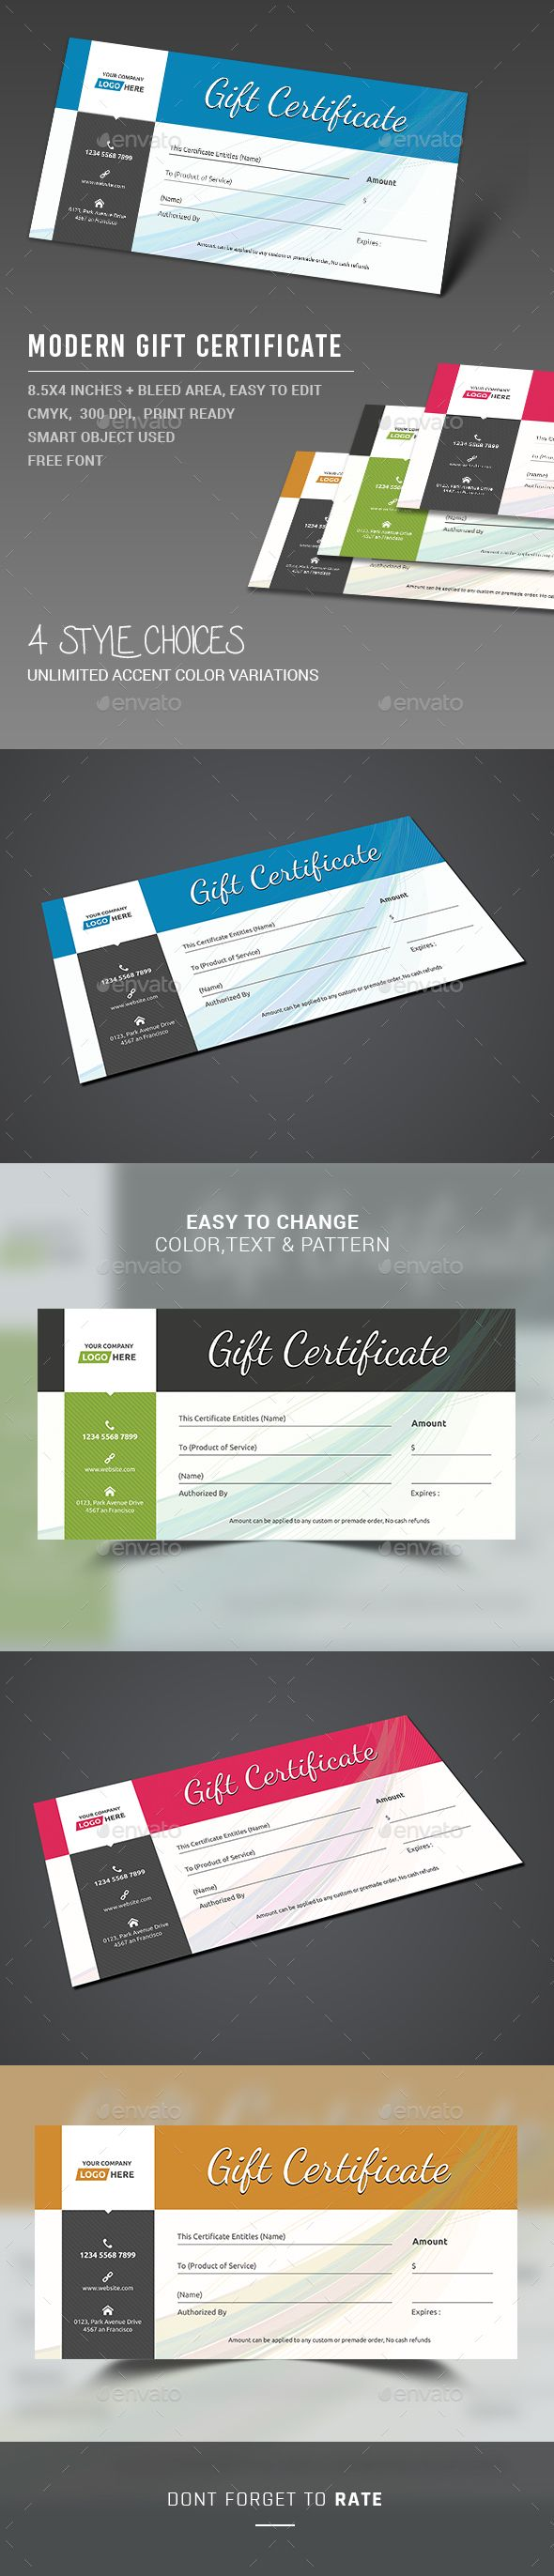 Best 25 gift certificate templates ideas on pinterest gift gift certificate template psd download here httpgraphicriver xflitez Gallery